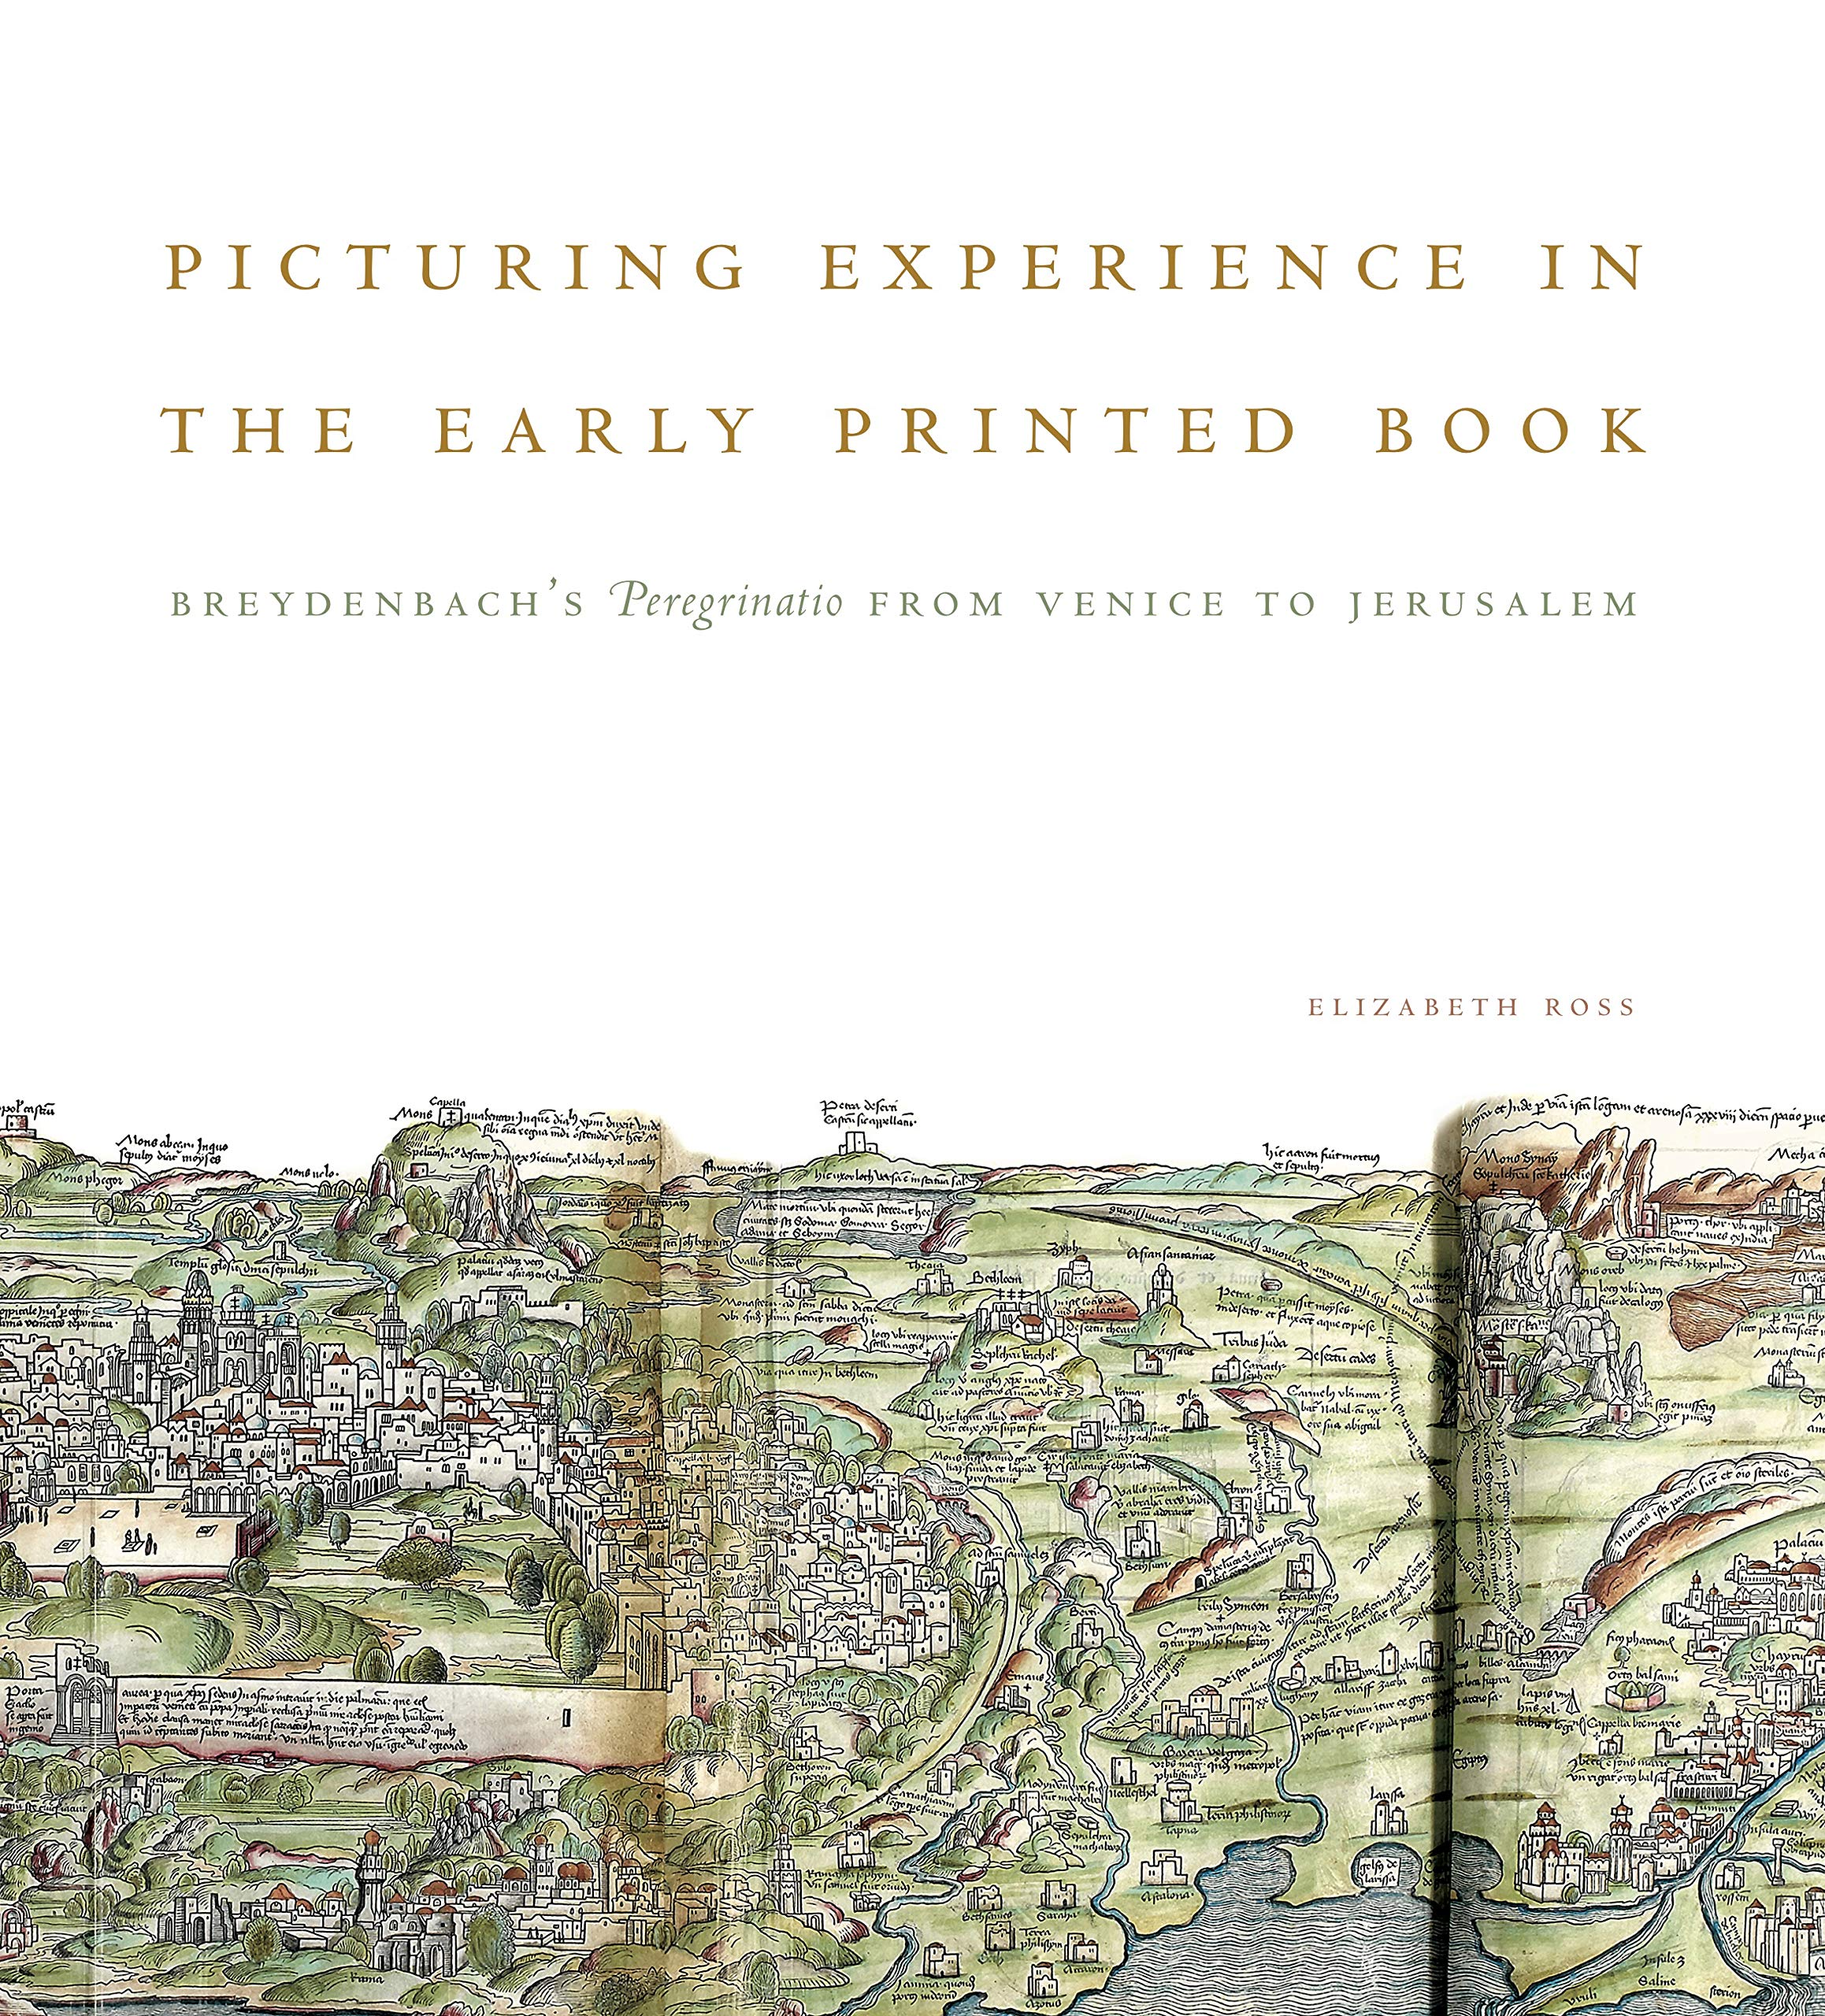 Picturing Experience in the Early Printed Book: Breydenbach's Peregrinatio from Venice to Jerusalem by Penn State University Press